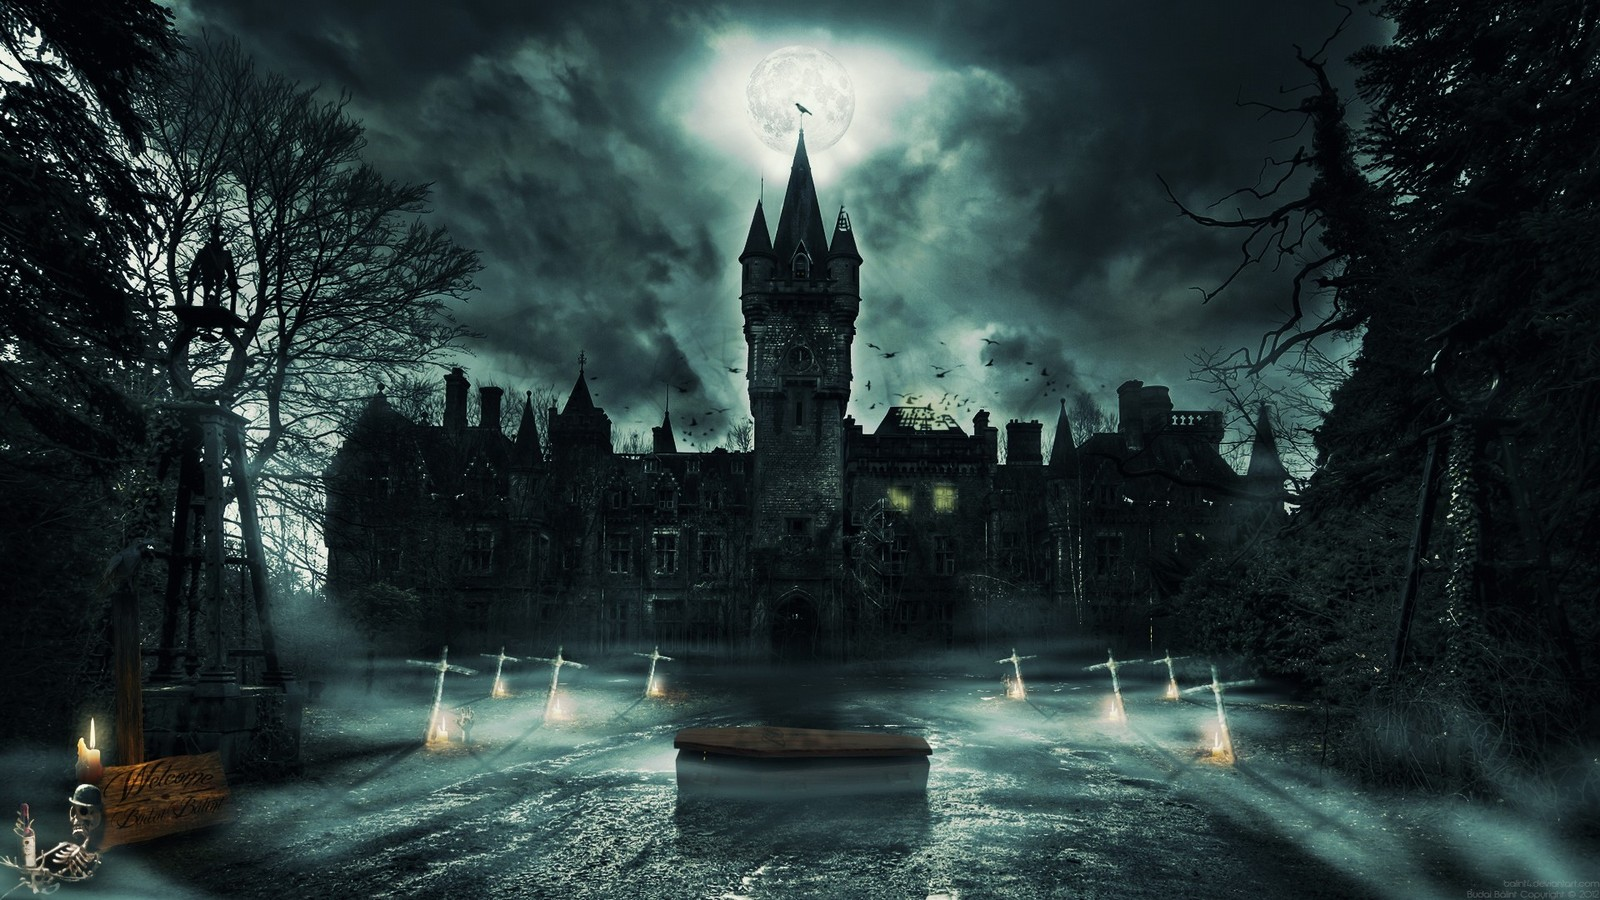 Haunted Castle With Cloud HD Wallpaper HD Wallpapers High Quality 1600x900